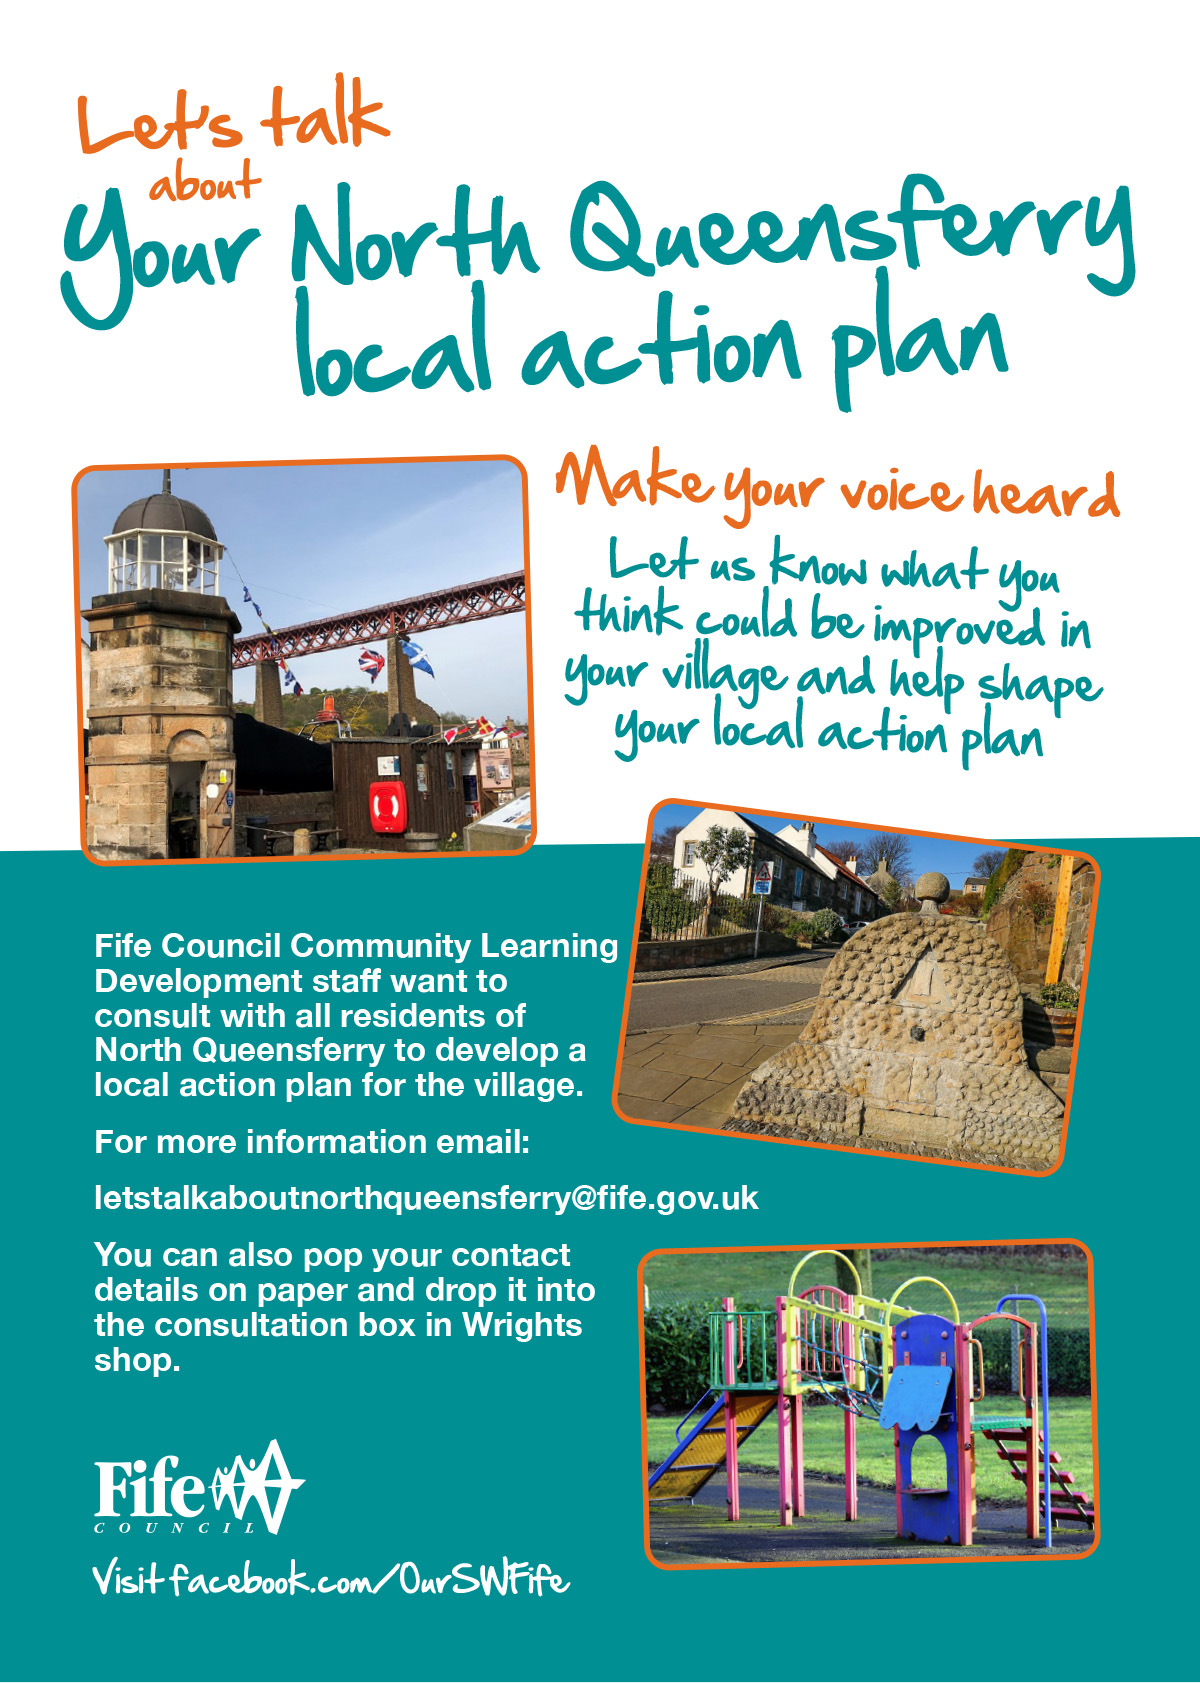 North Queensferry local action plan